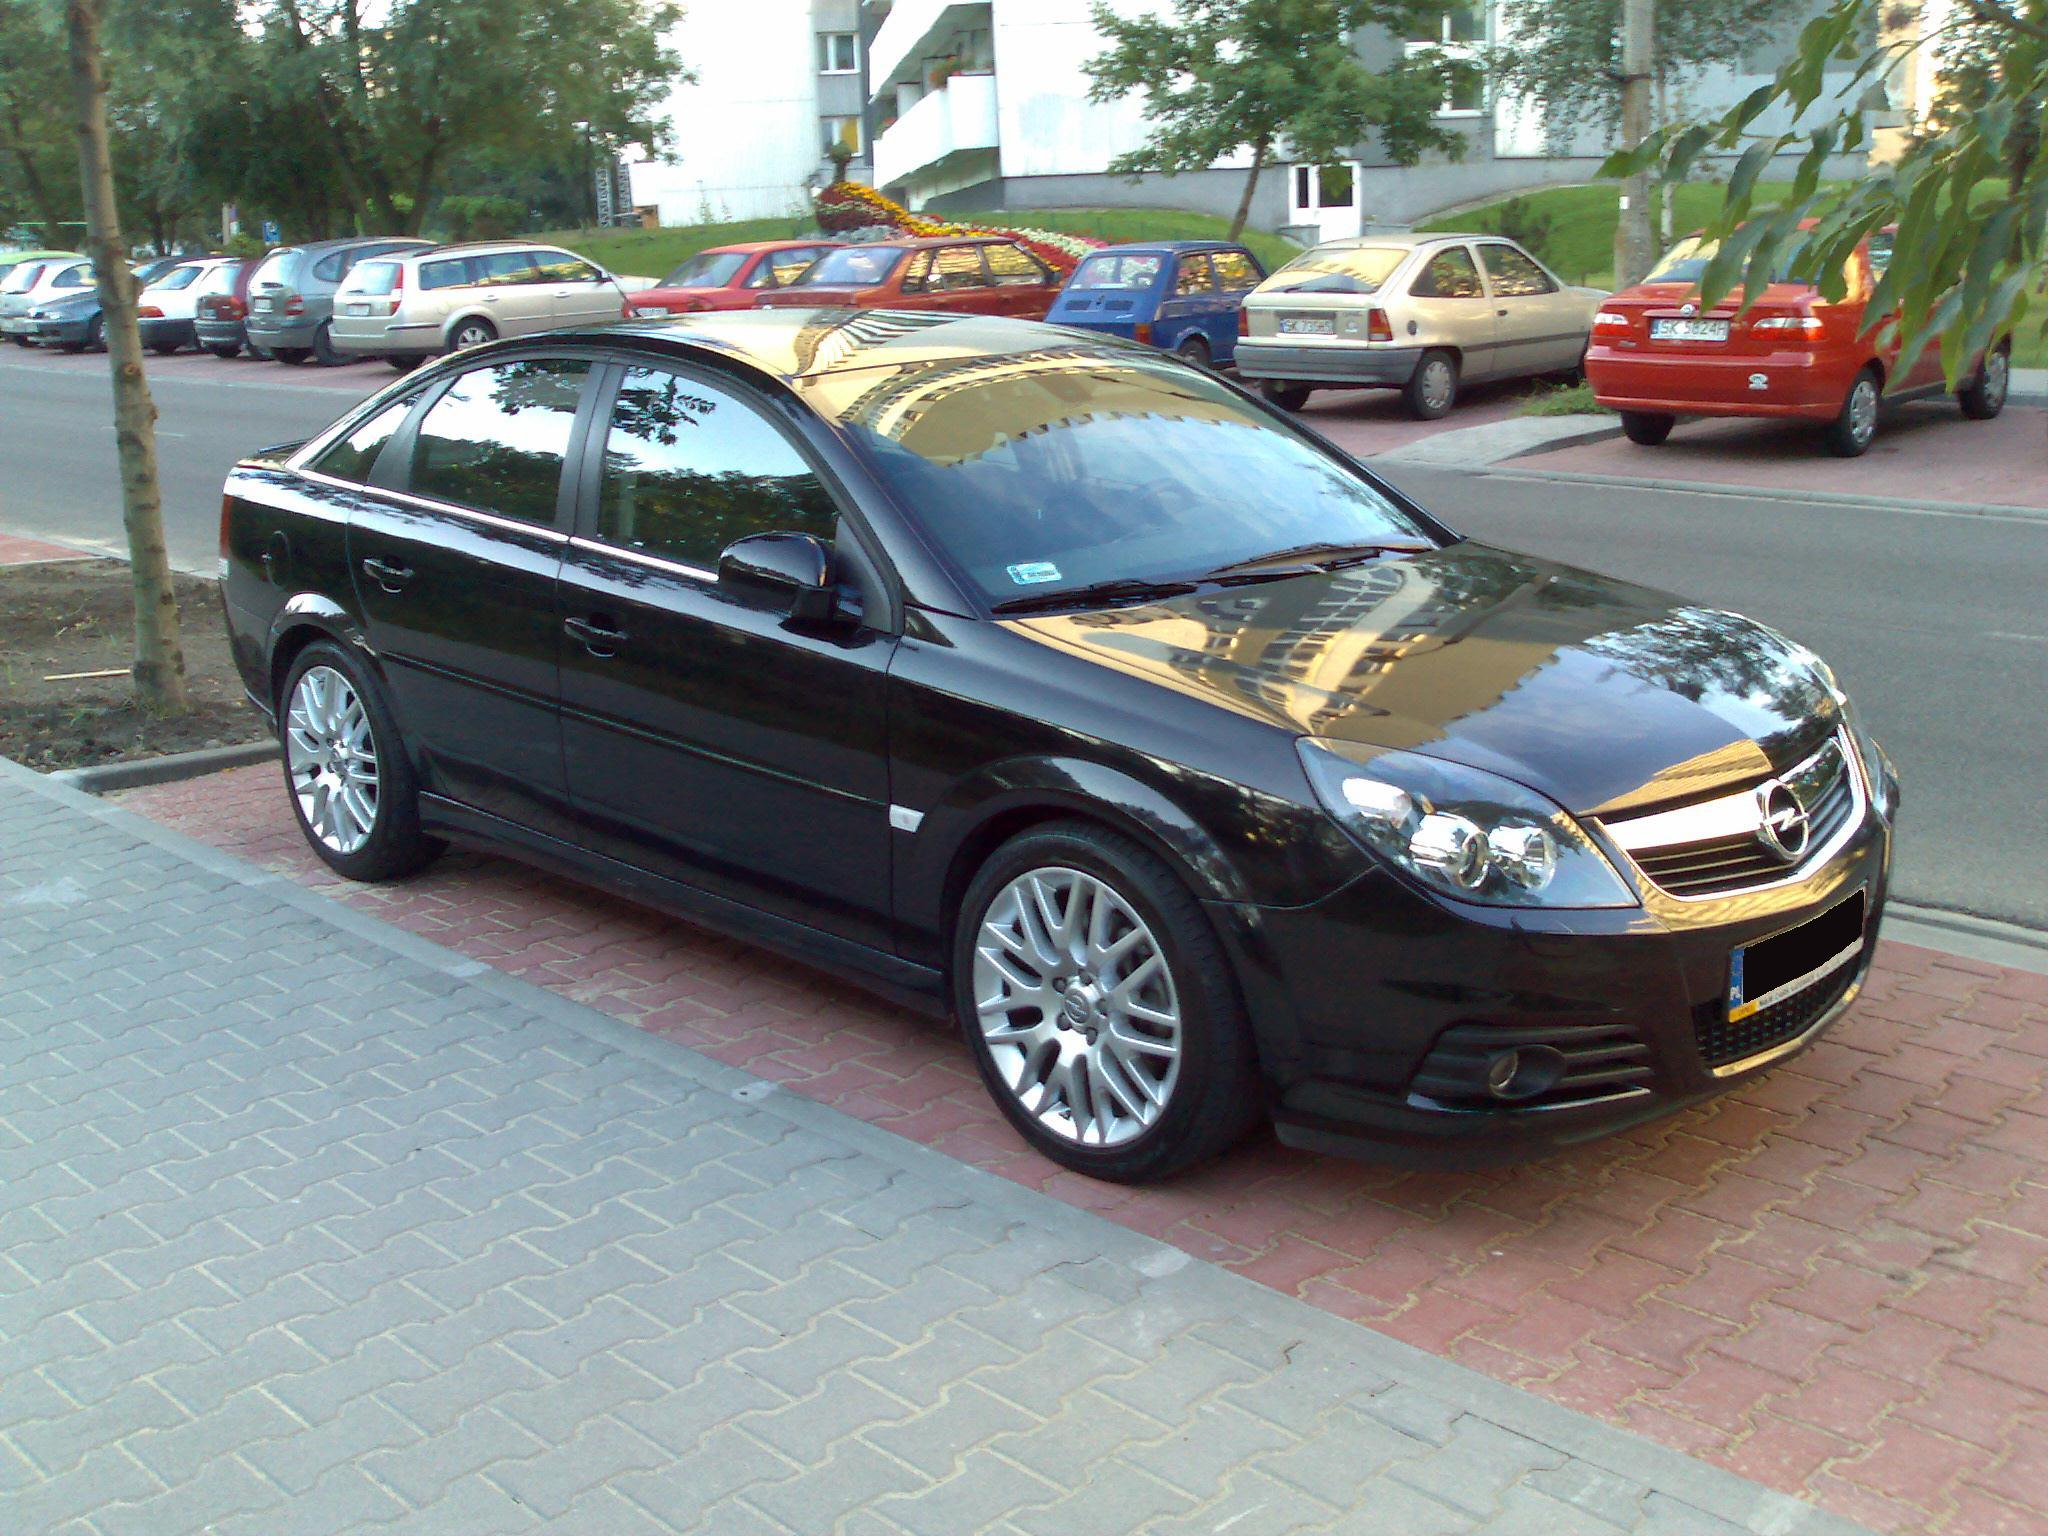 file opel vectra c gts wikimedia commons. Black Bedroom Furniture Sets. Home Design Ideas